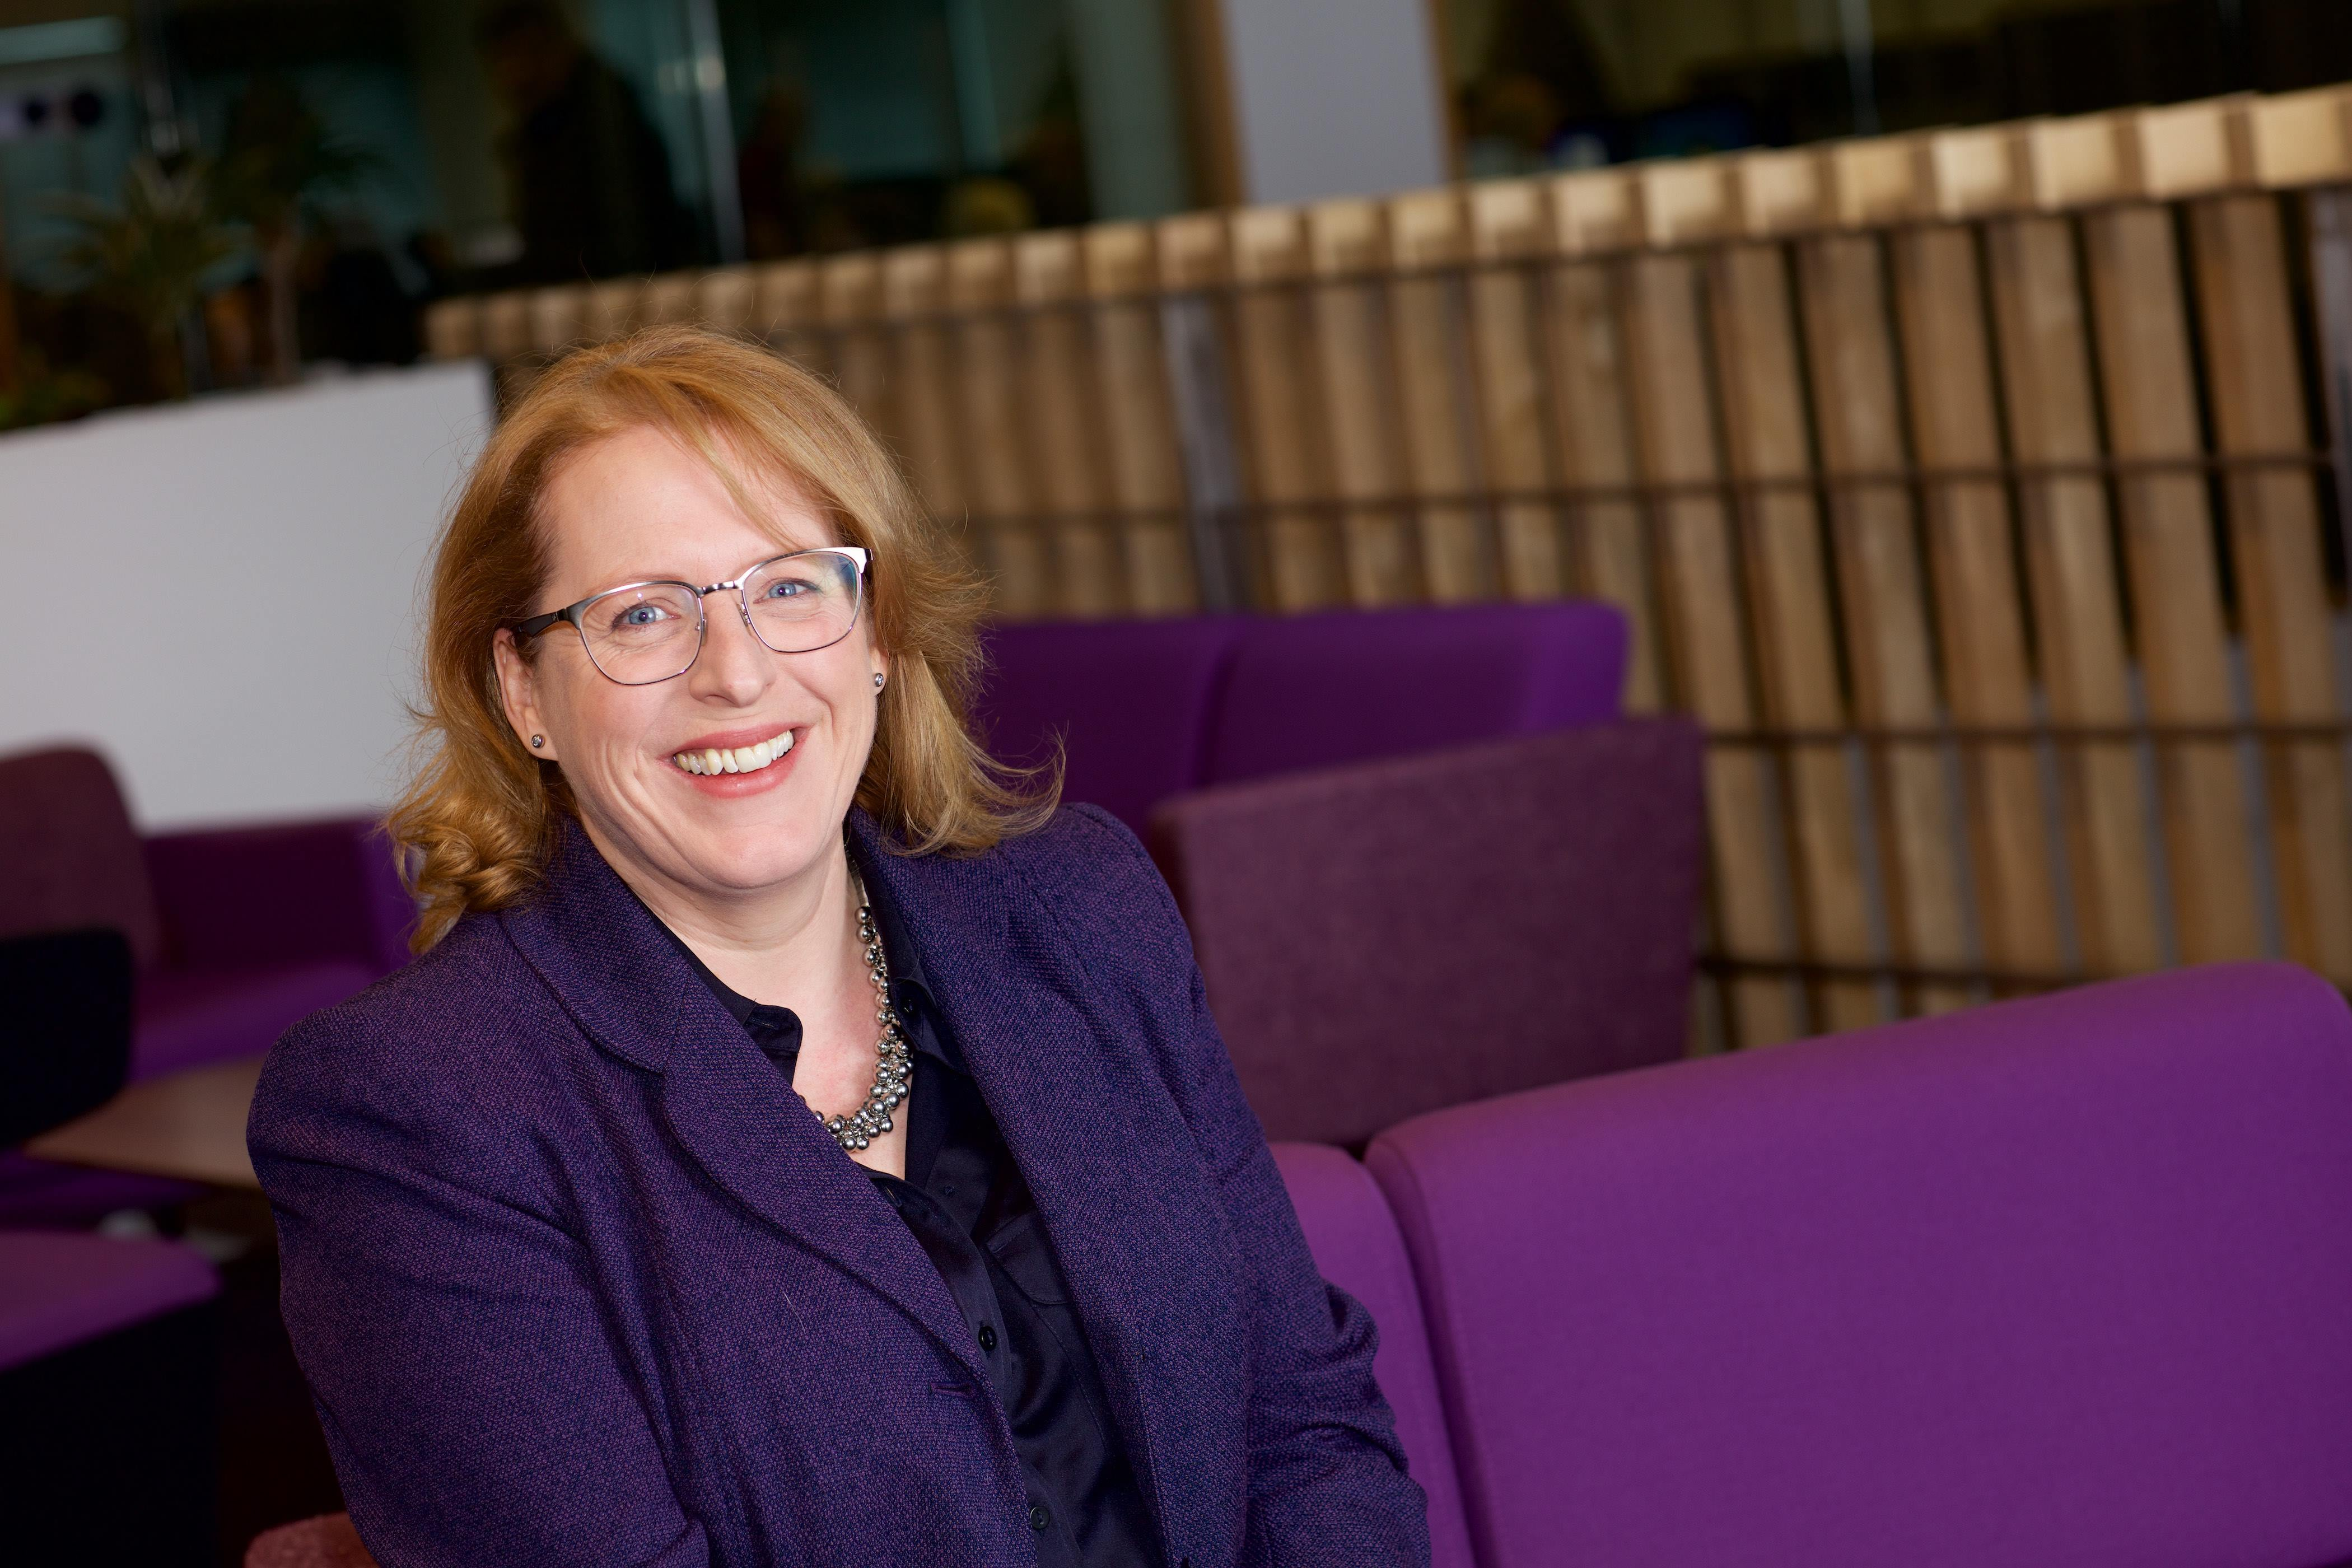 Scottish business sustainability leader announced as SEPA Deputy Chair